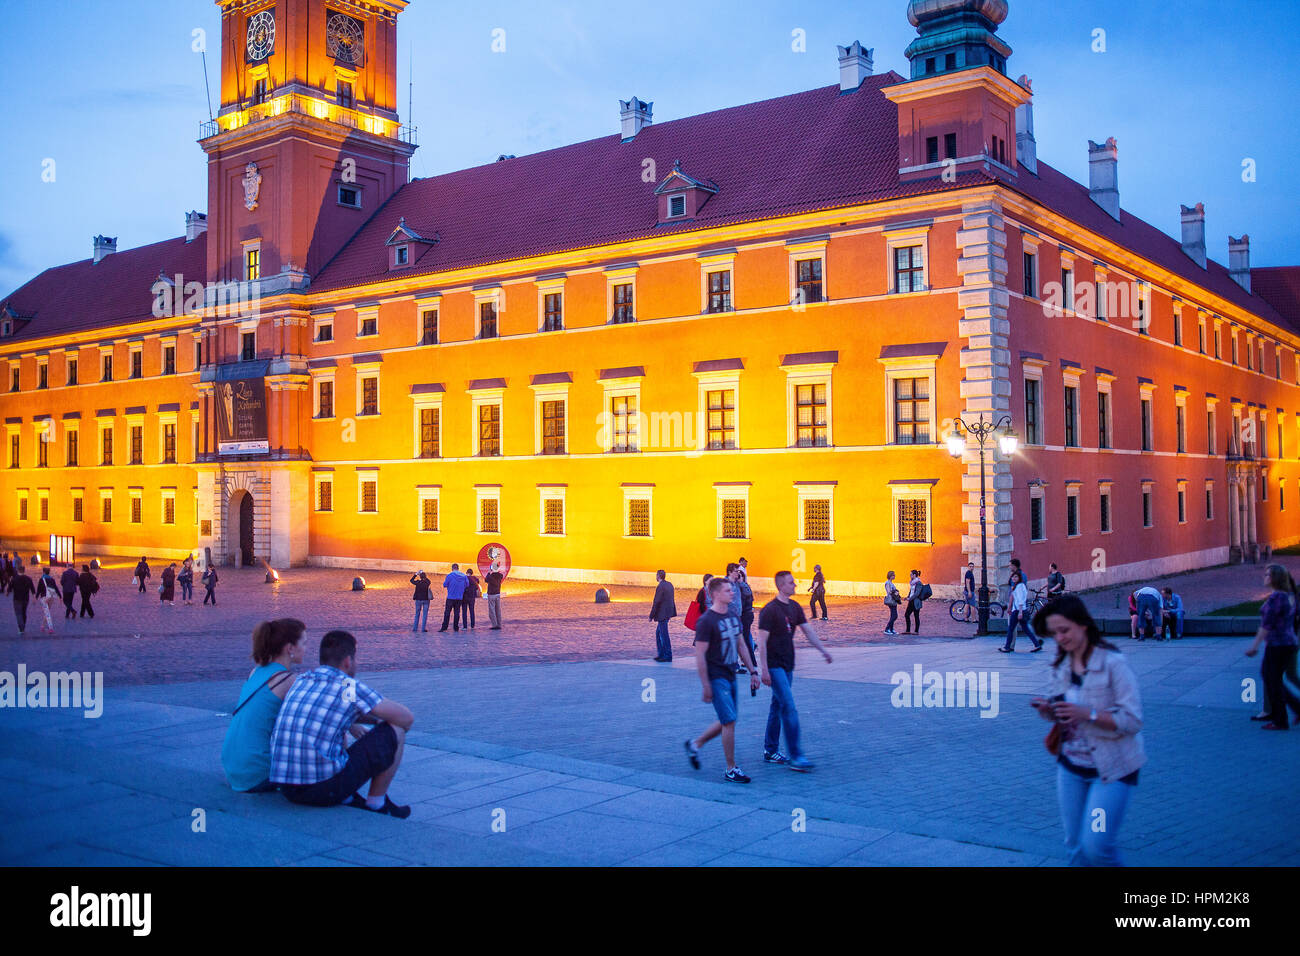 Plac Zamkowy square and The Royal Castle, Warsaw, Poland - Stock Image